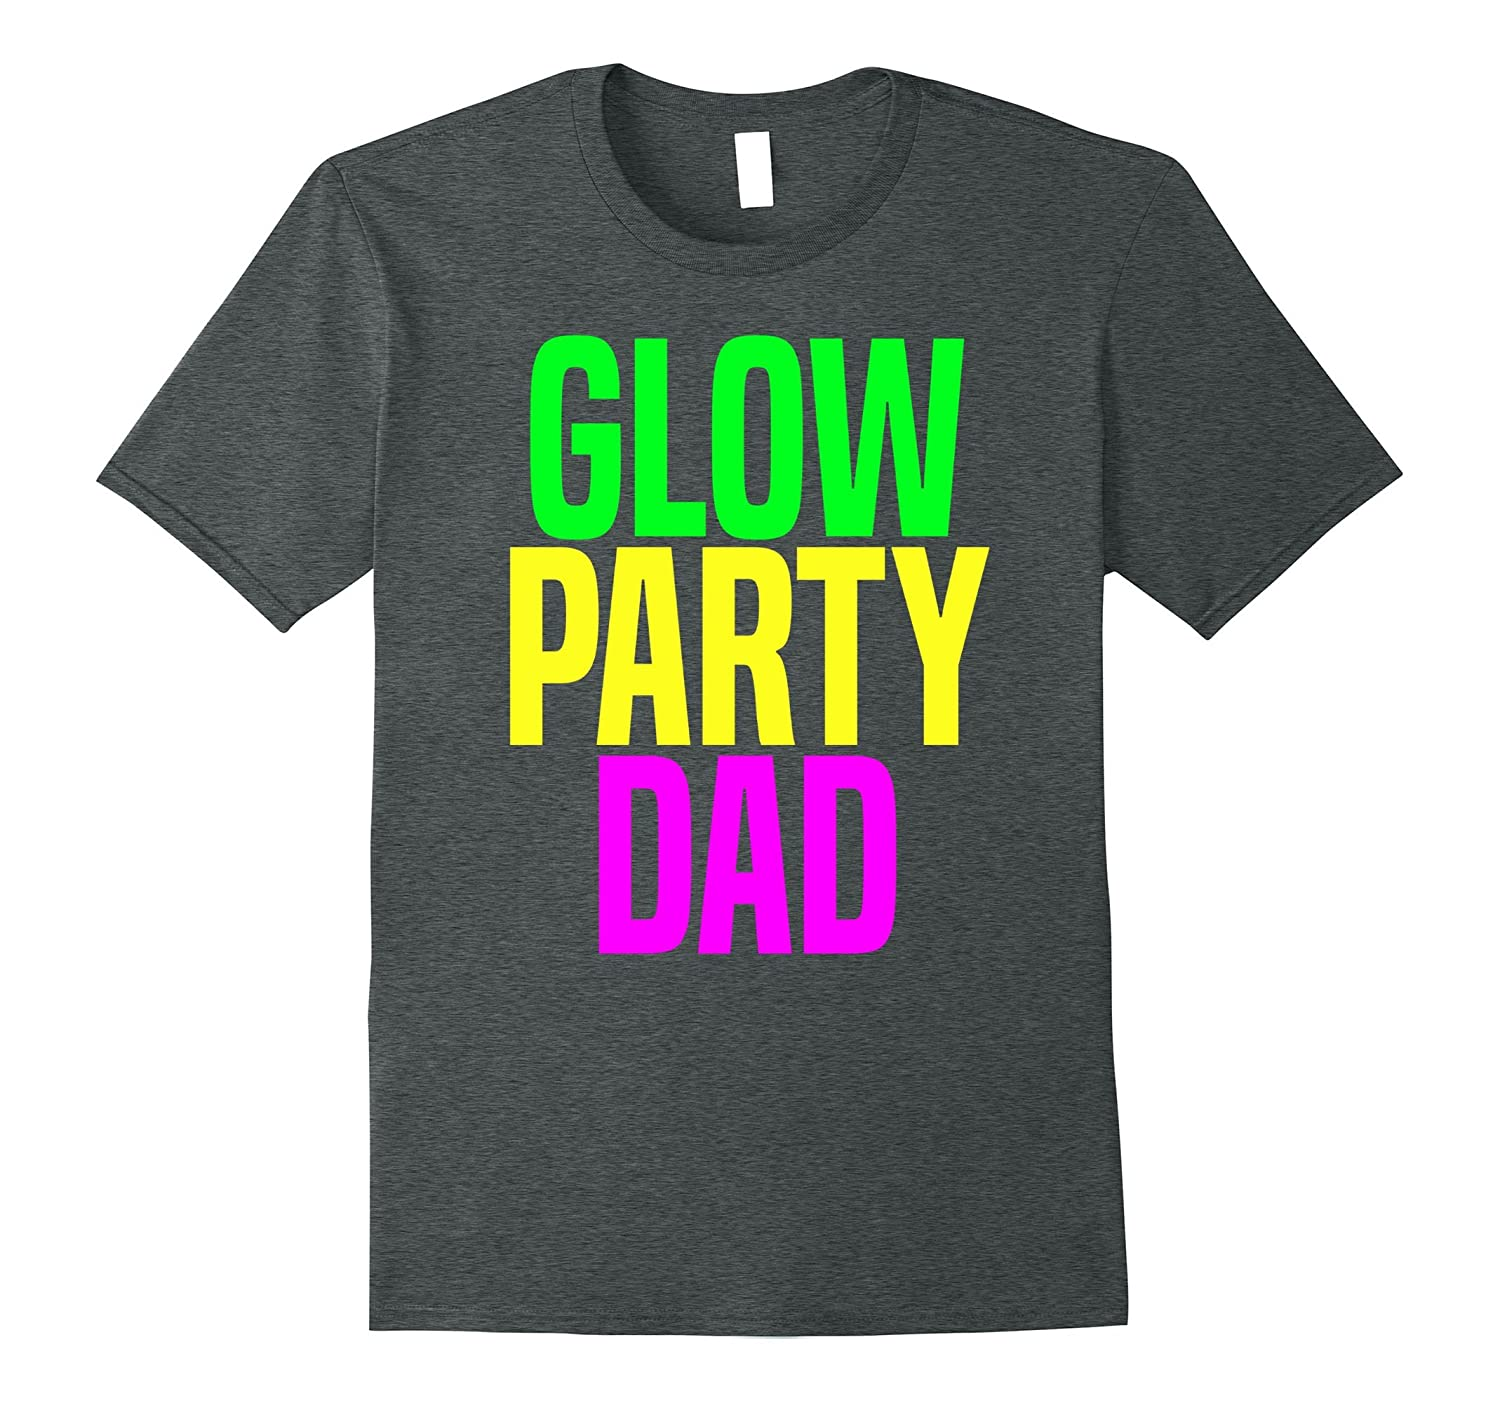 Glow Party Birthday Shirt Black Newstyleth